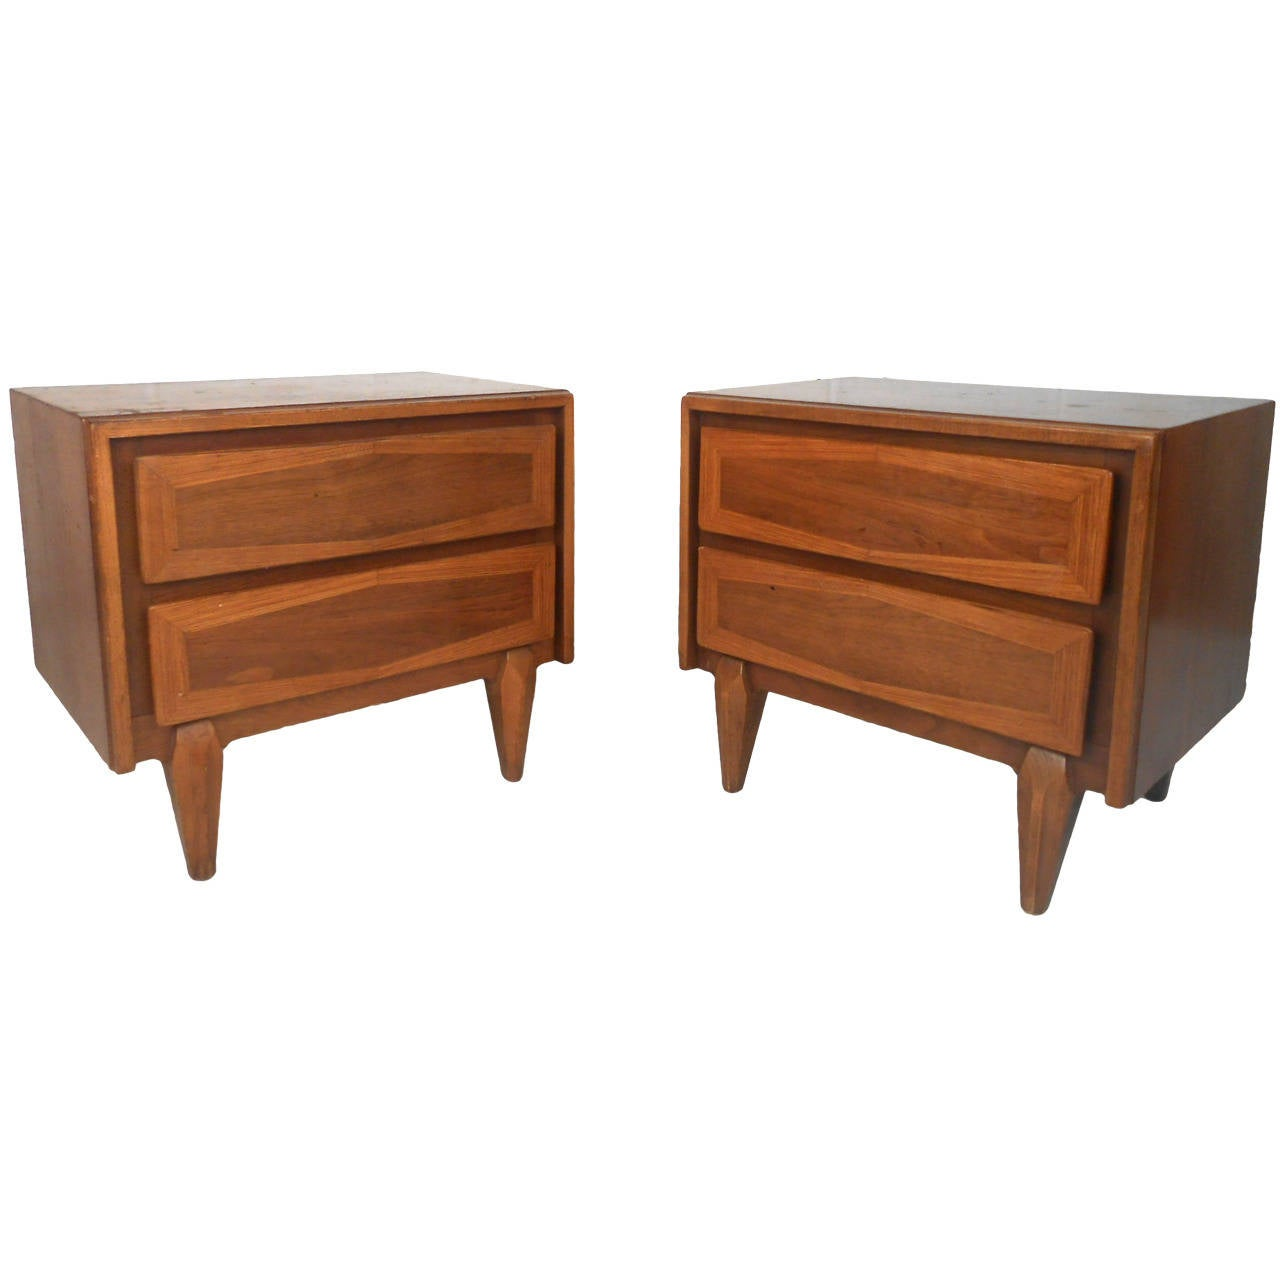 Pair of Mid-Century Modern American of Martinsville Nightstands